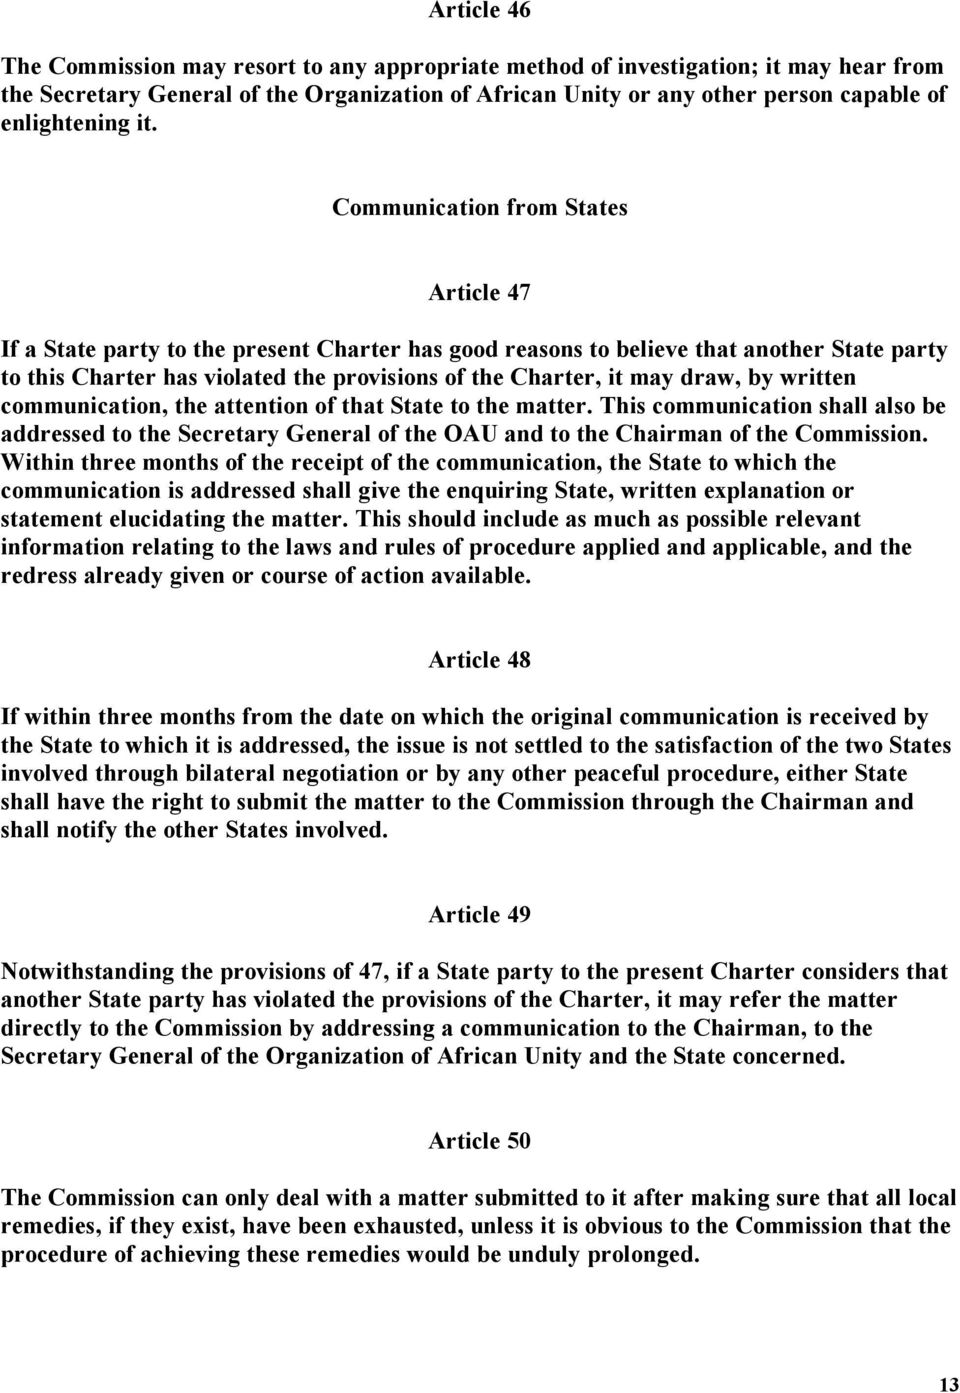 Communication from States Article 47 If a State party to the present Charter has good reasons to believe that another State party to this Charter has violated the provisions of the Charter, it may